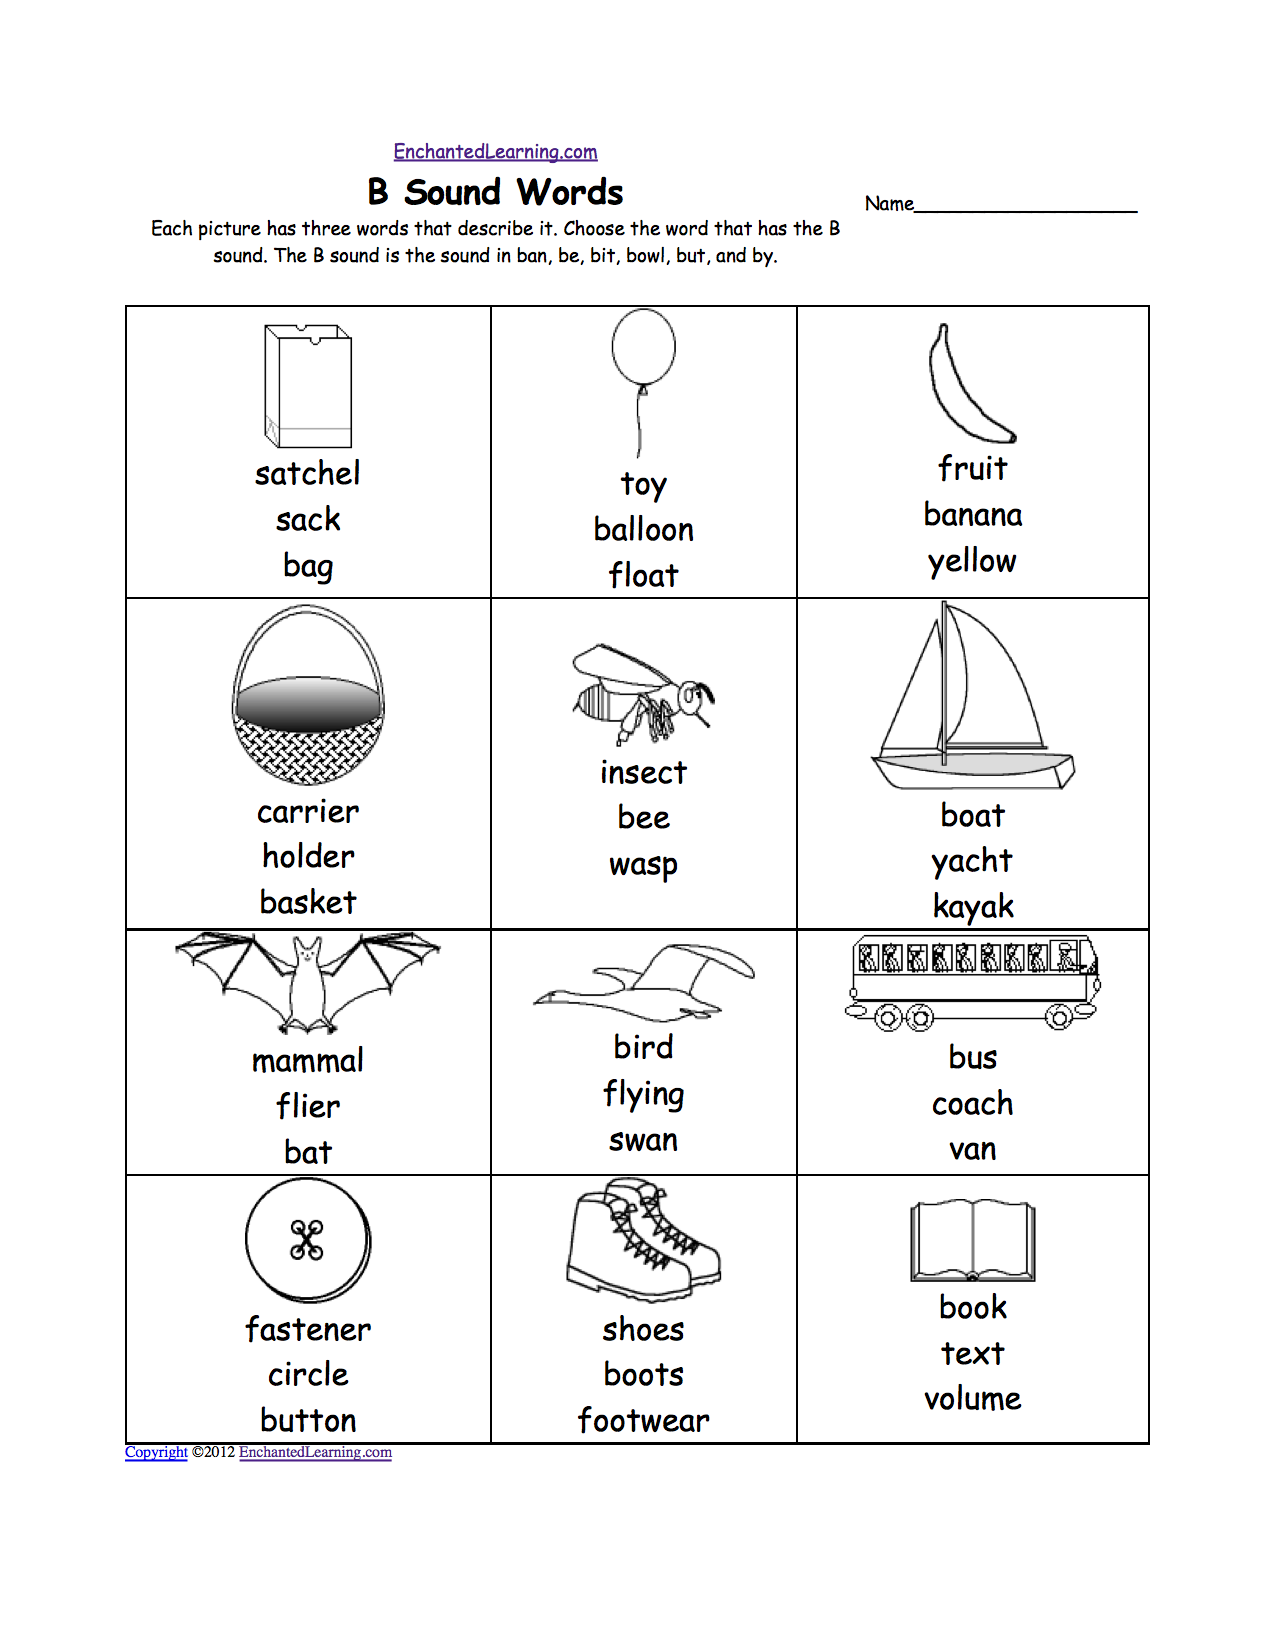 Aldiablosus  Pleasing Phonics Worksheets Multiple Choice Worksheets To Print  With Likable Quotbquot Sound Phonics Worksheet Multiple Choice Each Picture Has Three Words That Describe It Choose The Word That Has A Quotbquot Sound The Quotbquot Sound Is The Sound  With Extraordinary Jobs Worksheet Esl Also Sound Worksheets Ks In Addition Math Worksheets Slope And Interpreting Poetry Worksheets As Well As Common Core Worksheets Grade  Additionally Our And Are Worksheets From Enchantedlearningcom With Aldiablosus  Likable Phonics Worksheets Multiple Choice Worksheets To Print  With Extraordinary Quotbquot Sound Phonics Worksheet Multiple Choice Each Picture Has Three Words That Describe It Choose The Word That Has A Quotbquot Sound The Quotbquot Sound Is The Sound  And Pleasing Jobs Worksheet Esl Also Sound Worksheets Ks In Addition Math Worksheets Slope From Enchantedlearningcom